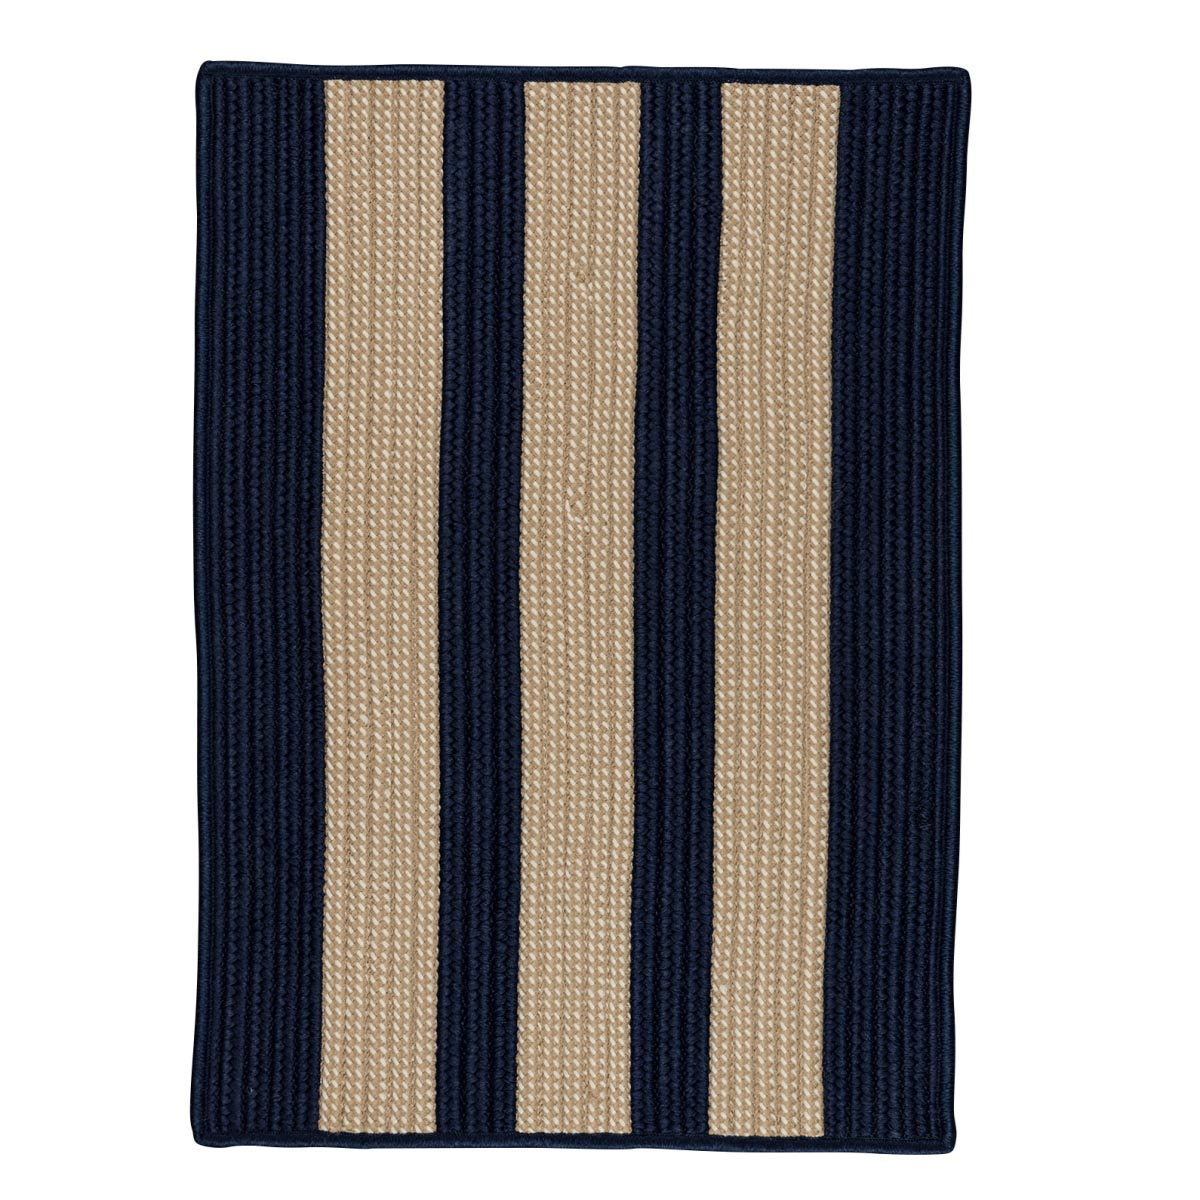 Boat House Navy Outdoor Braided Rectangular Rugs